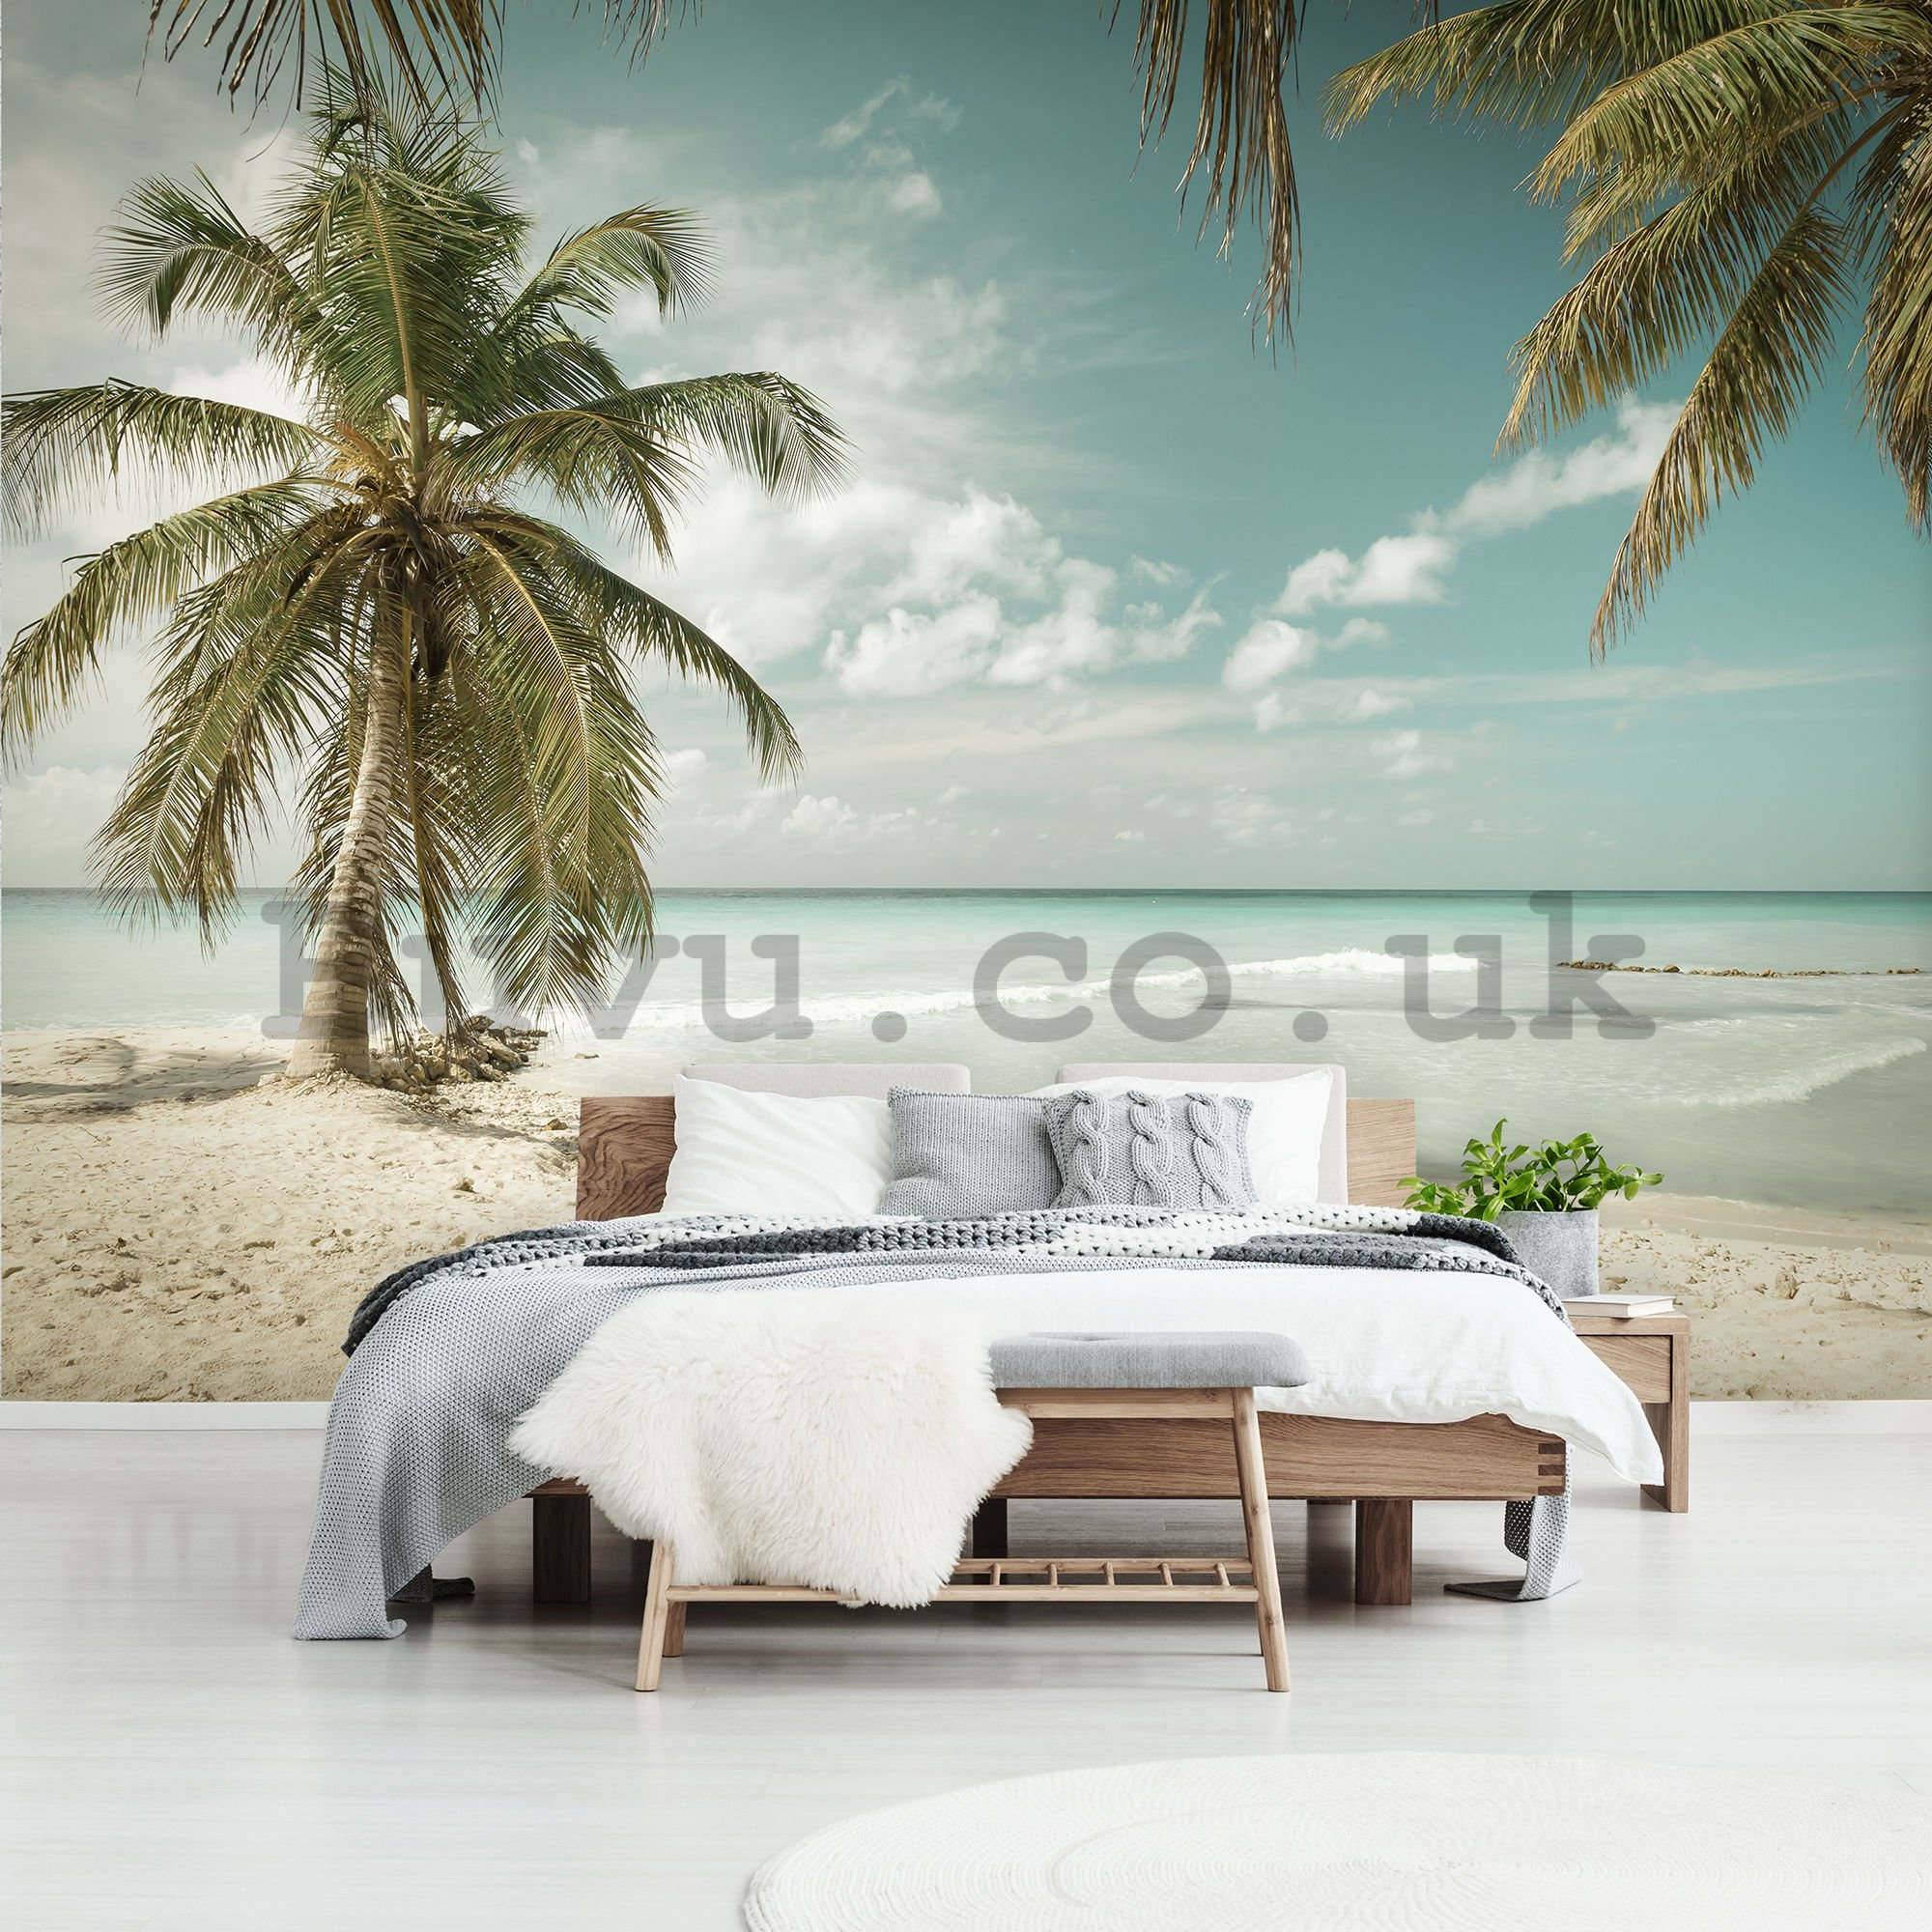 Wall mural vlies: Palm trees over the sea - 254x368 cm